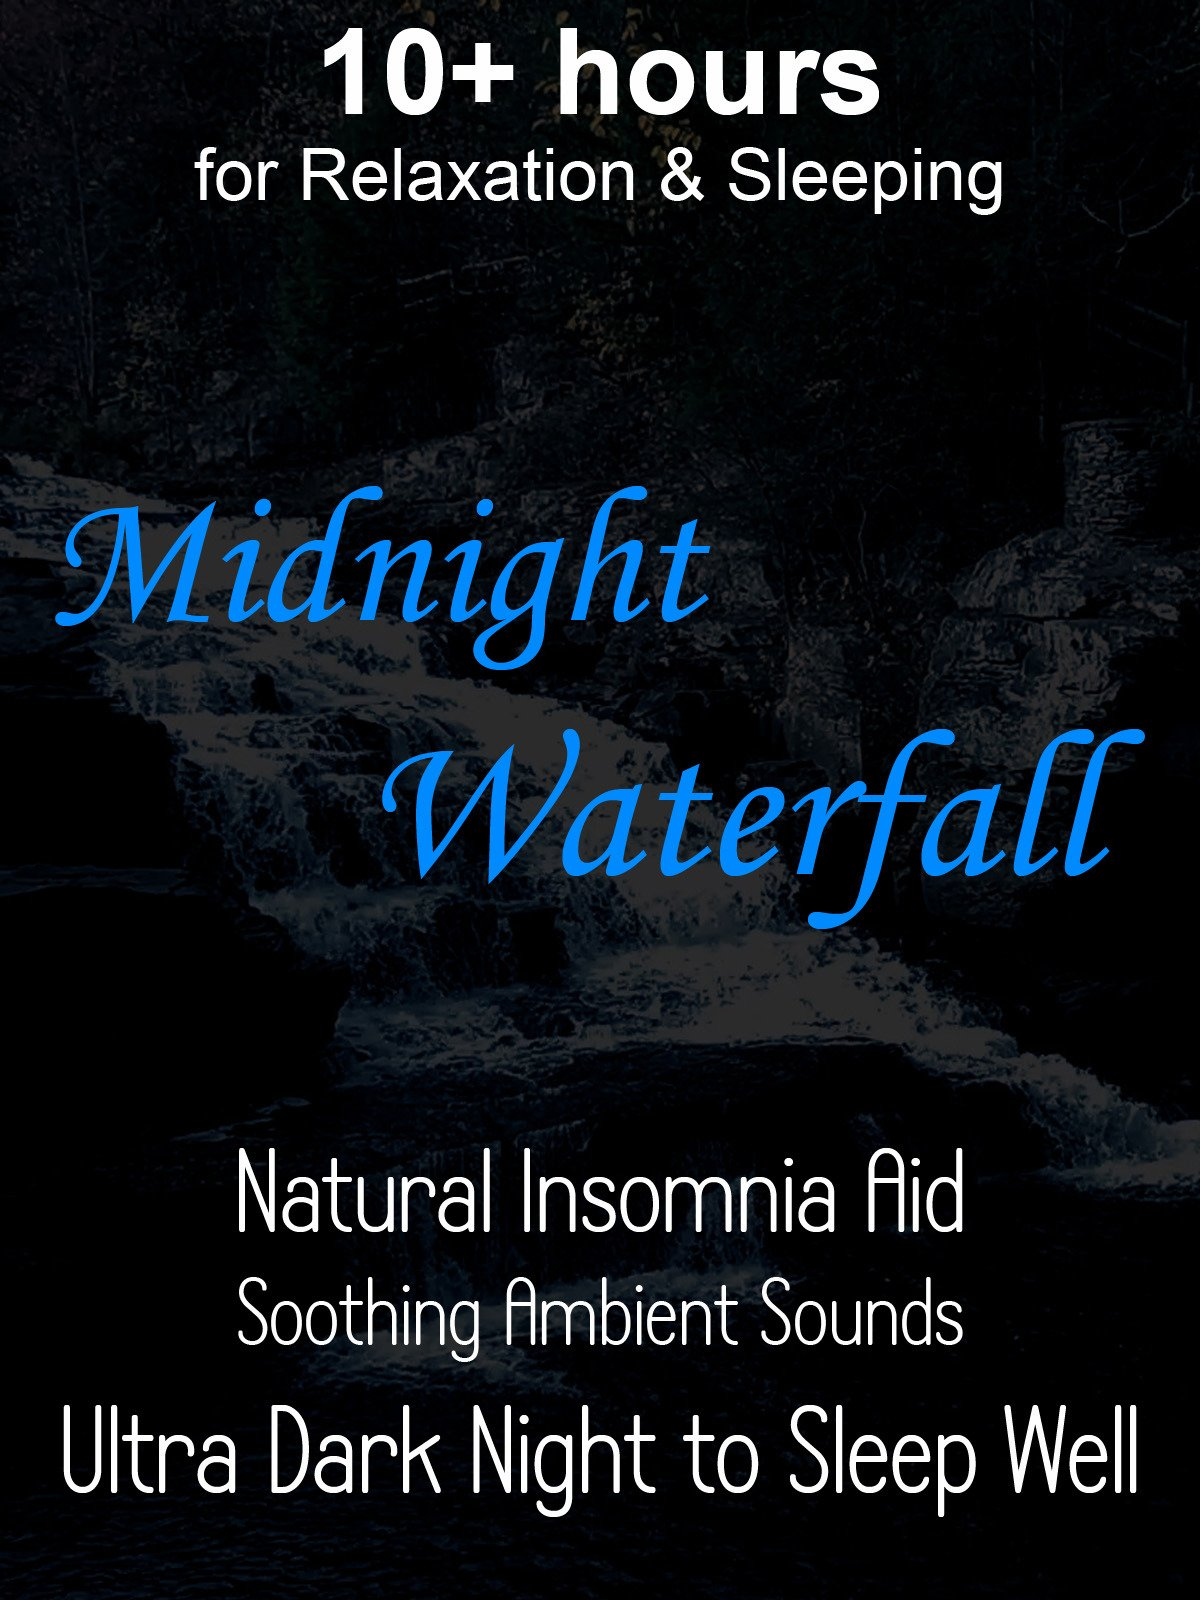 10+ hours for Relaxation & Sleeping Midnight Waterfall Natural Insomnia Aid Soothing Ambient Sounds Ultra Dark Night to Sleep Well